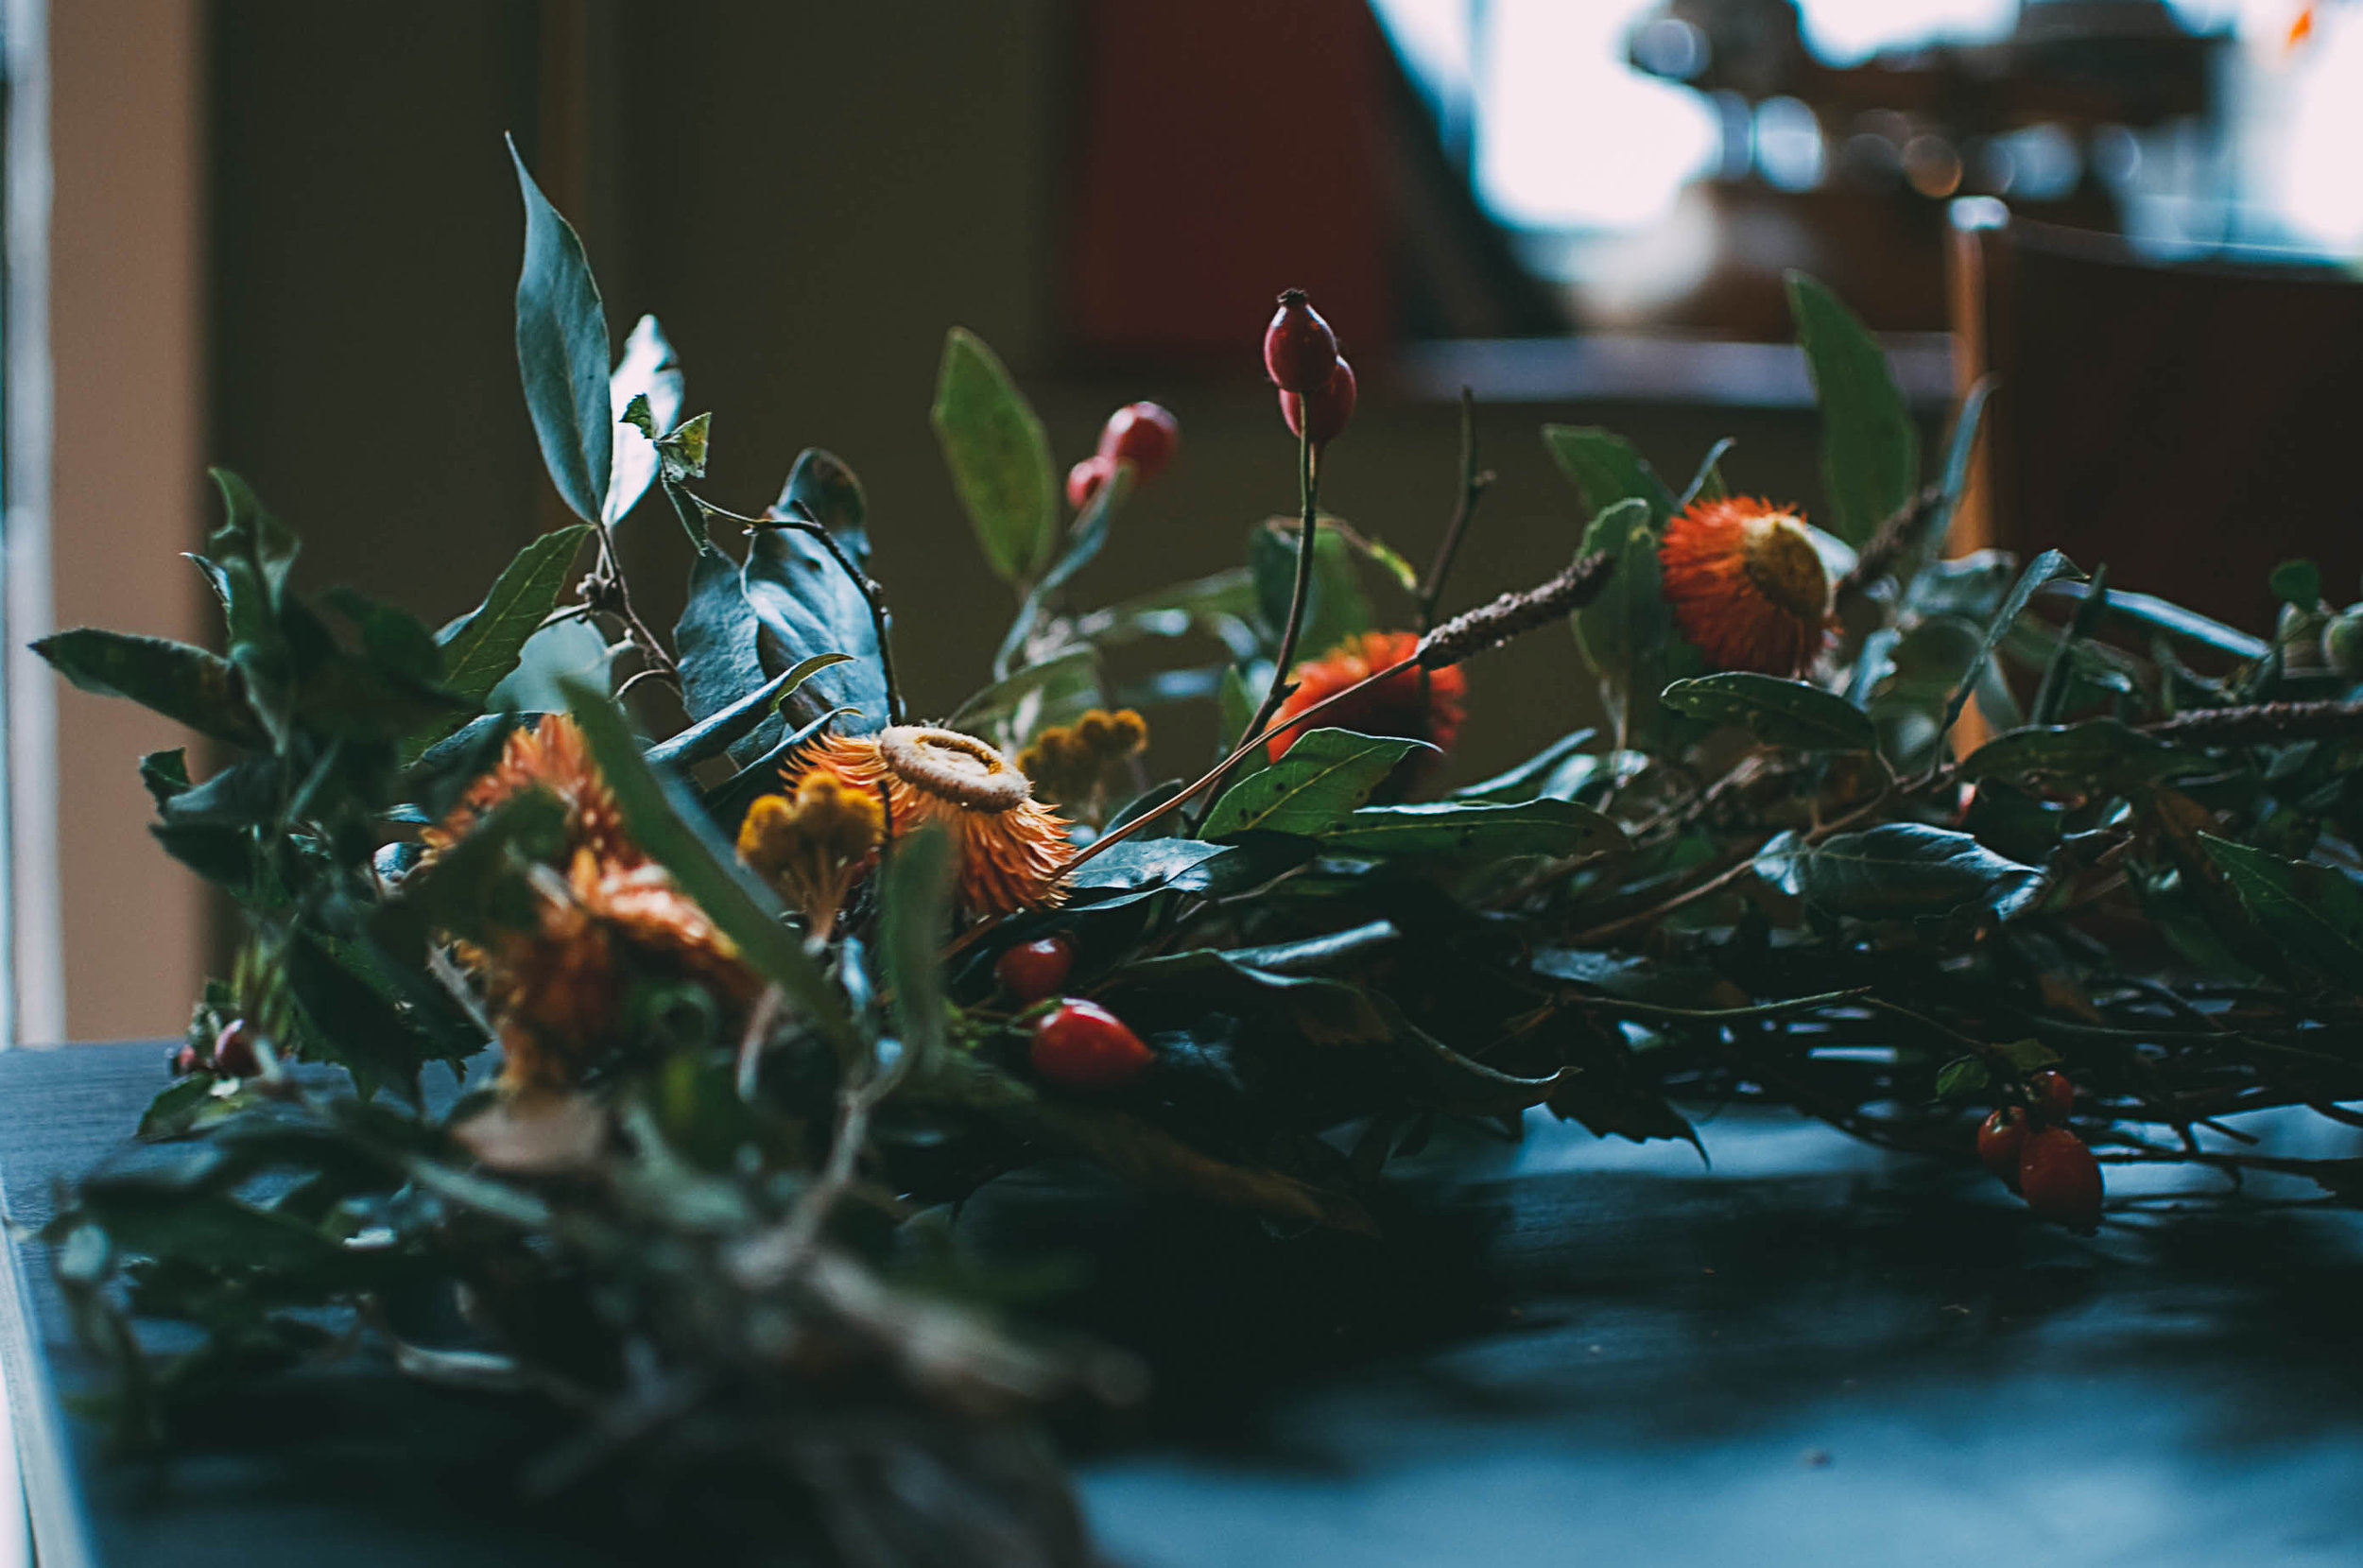 flowers and foliage at festive wreath workshop near me